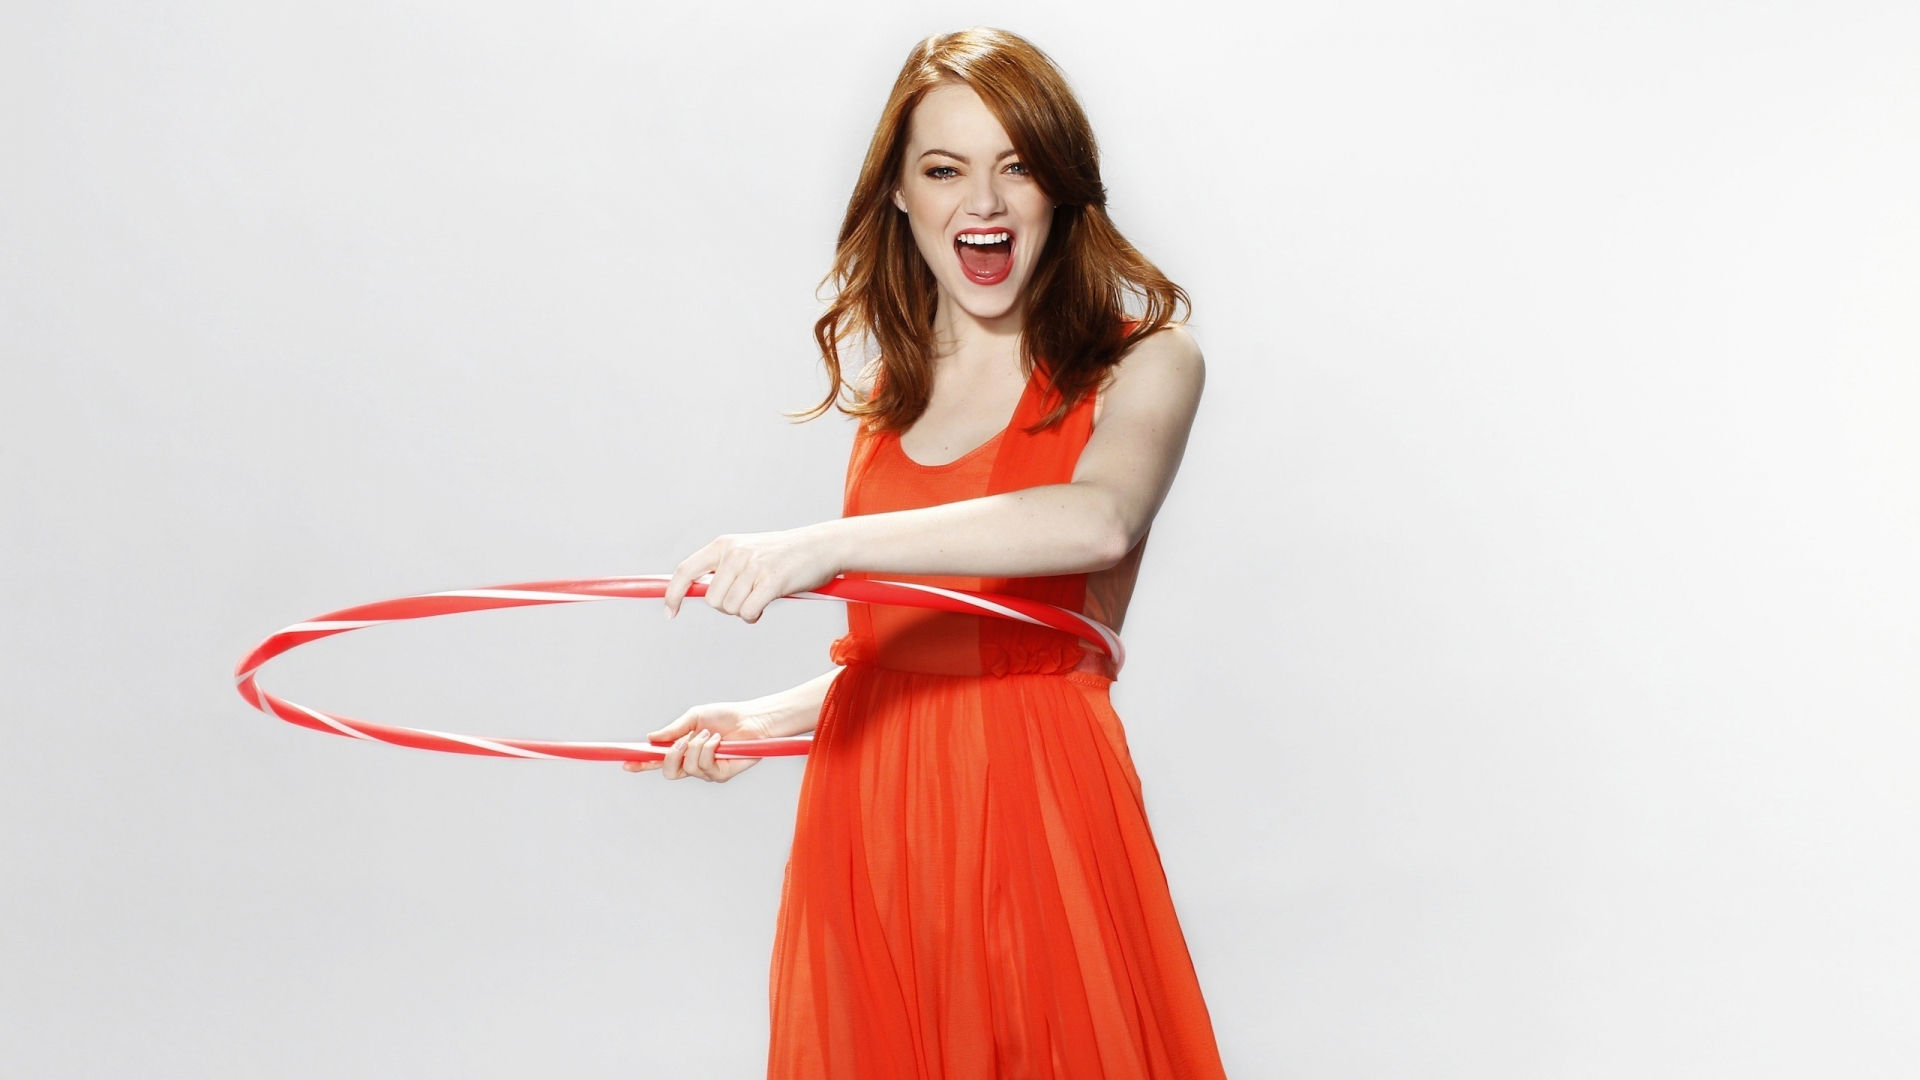 Happy Emma Stone for 1920 x 1080 HDTV 1080p resolution